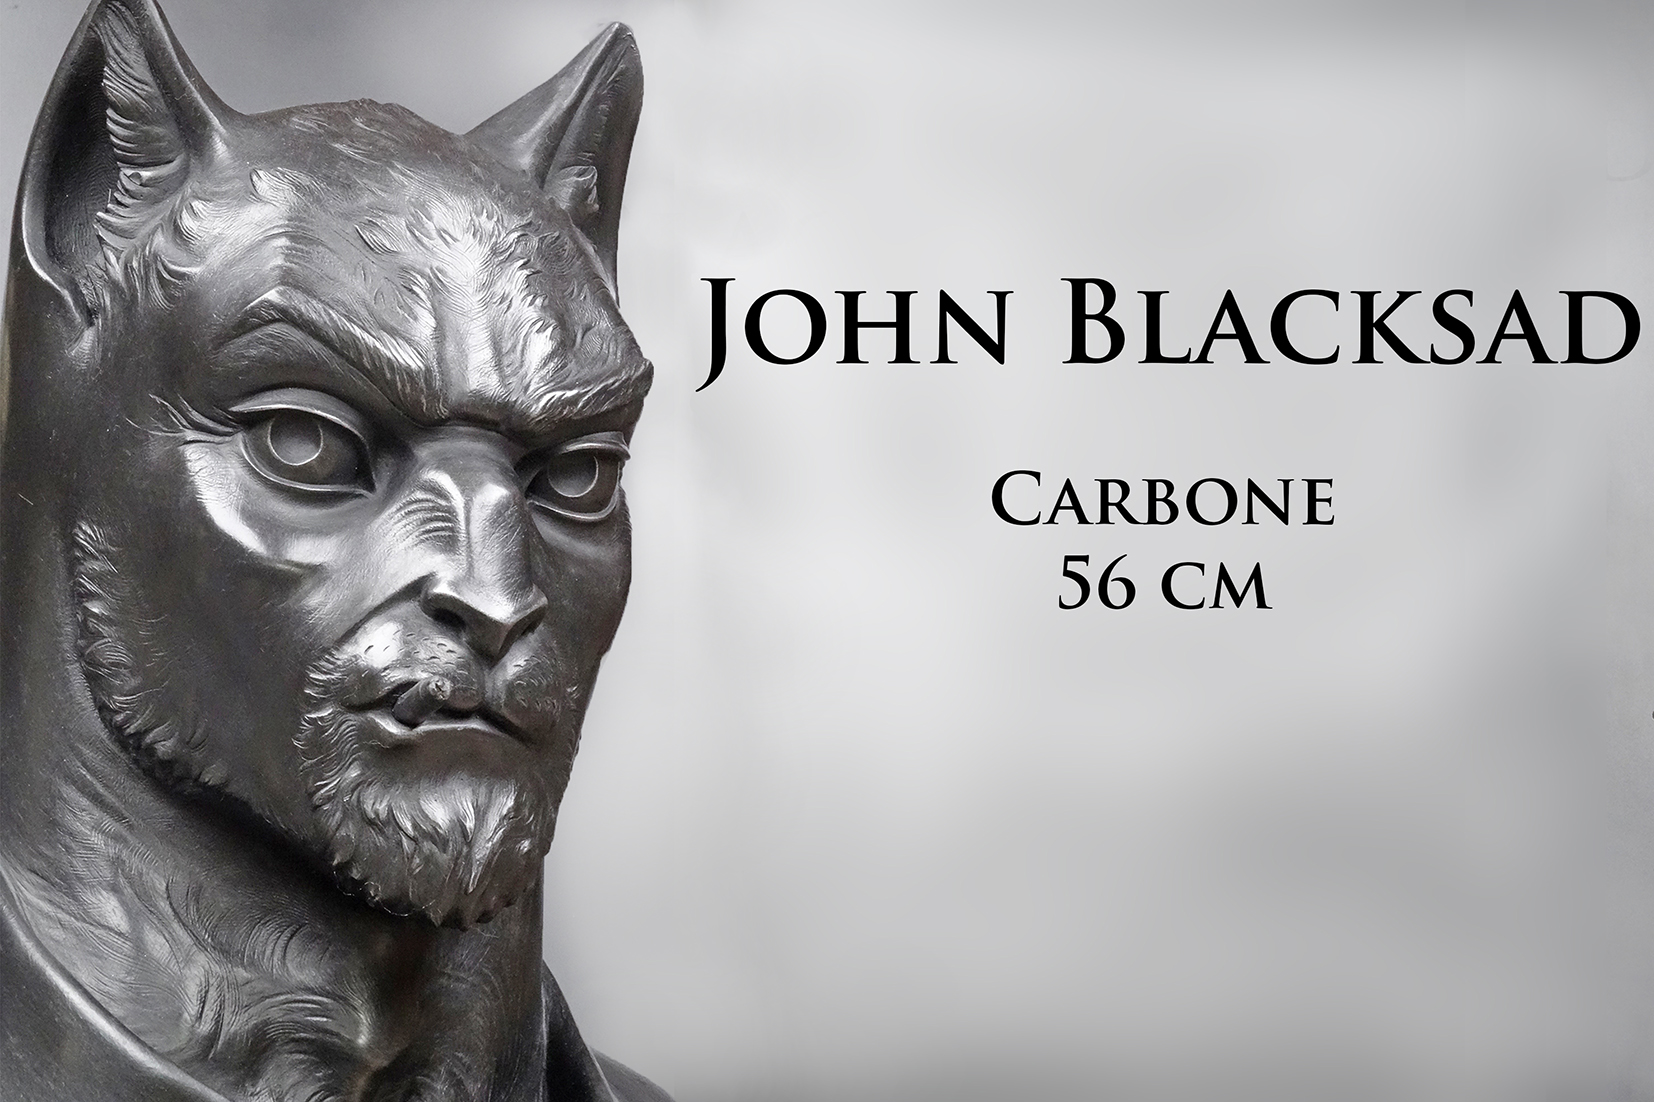 Blacksad Carbone